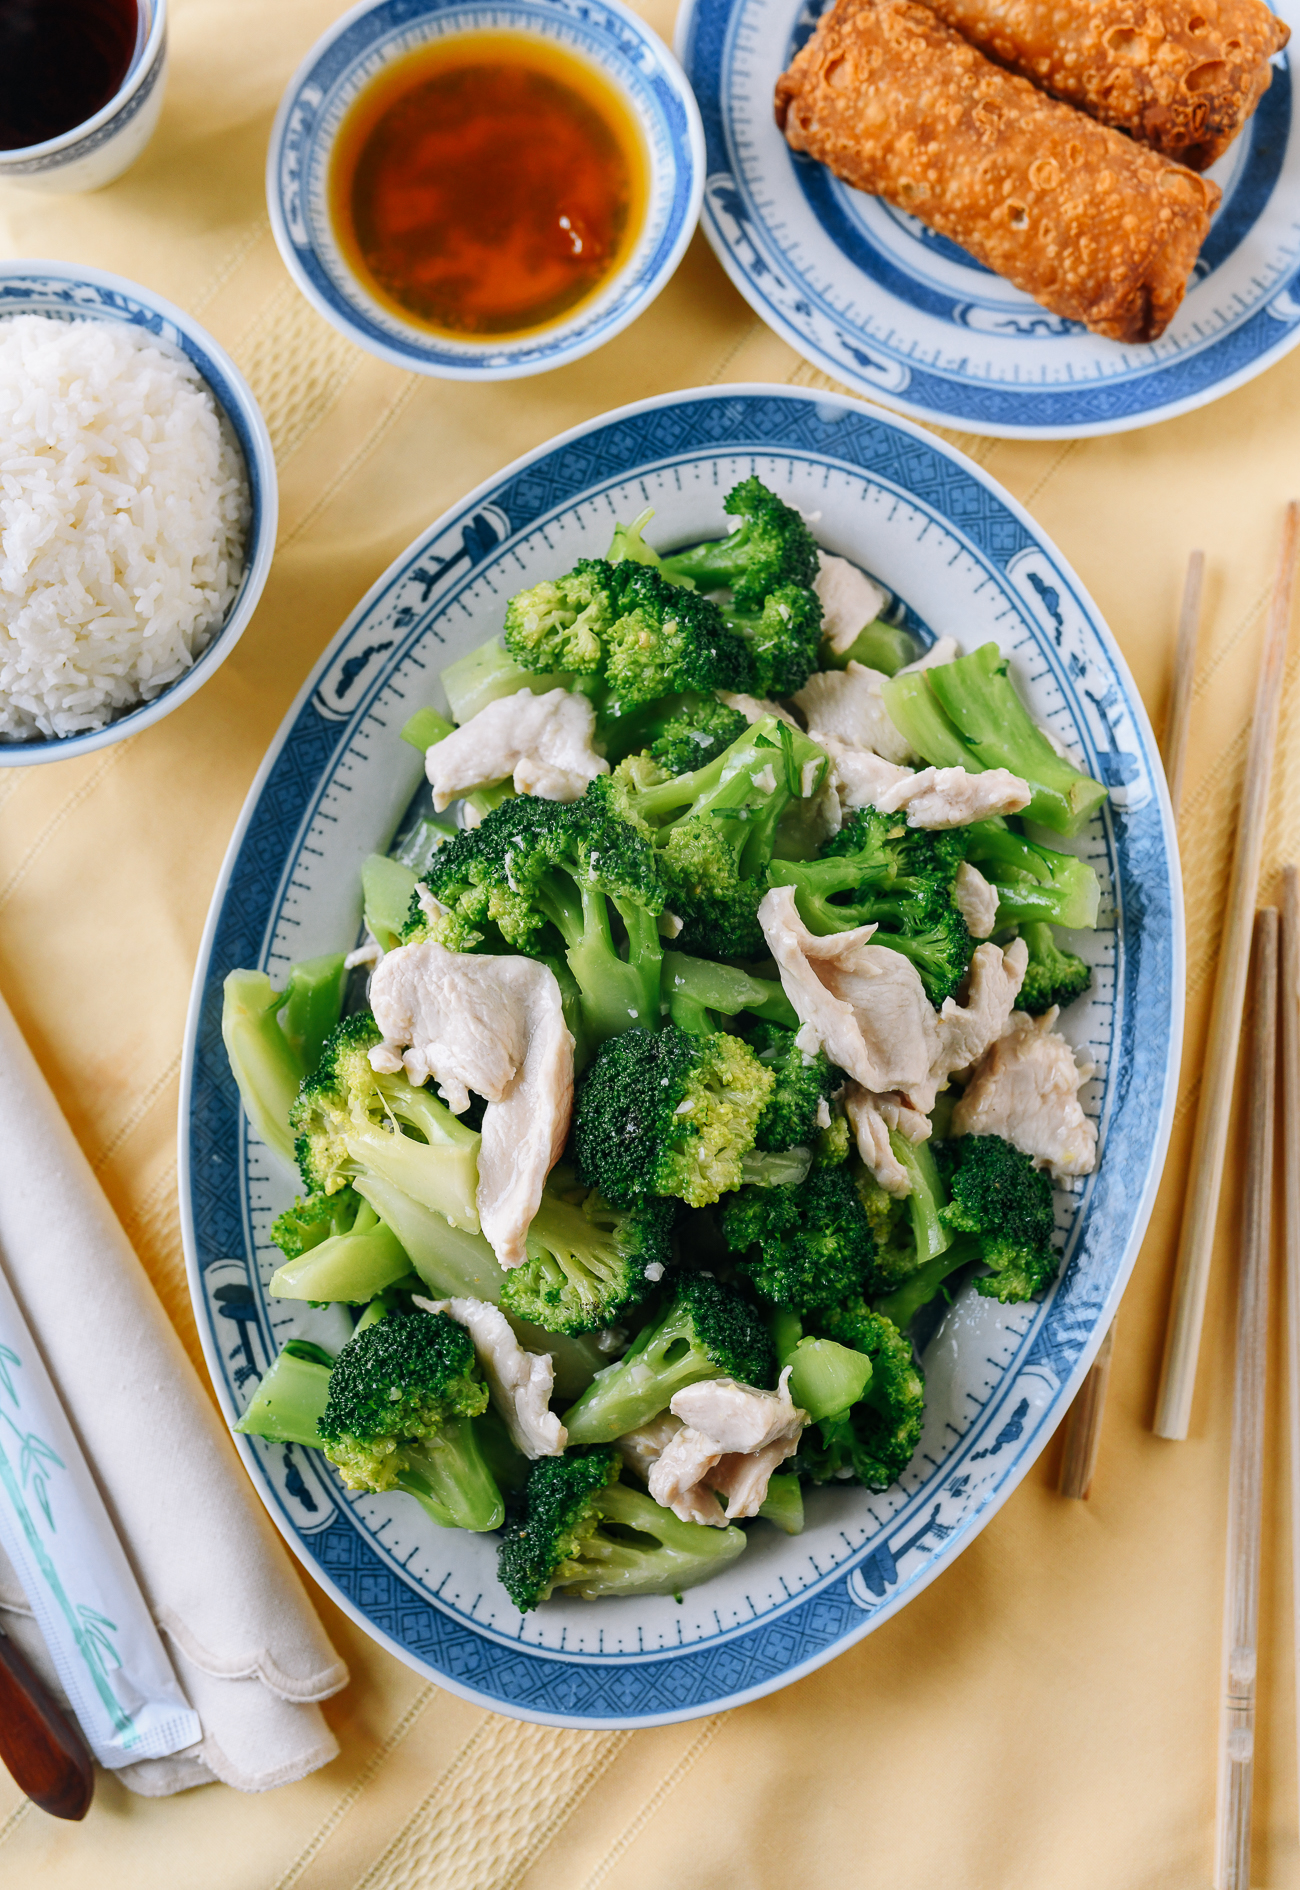 Chicken & Broccoli with White Sauce